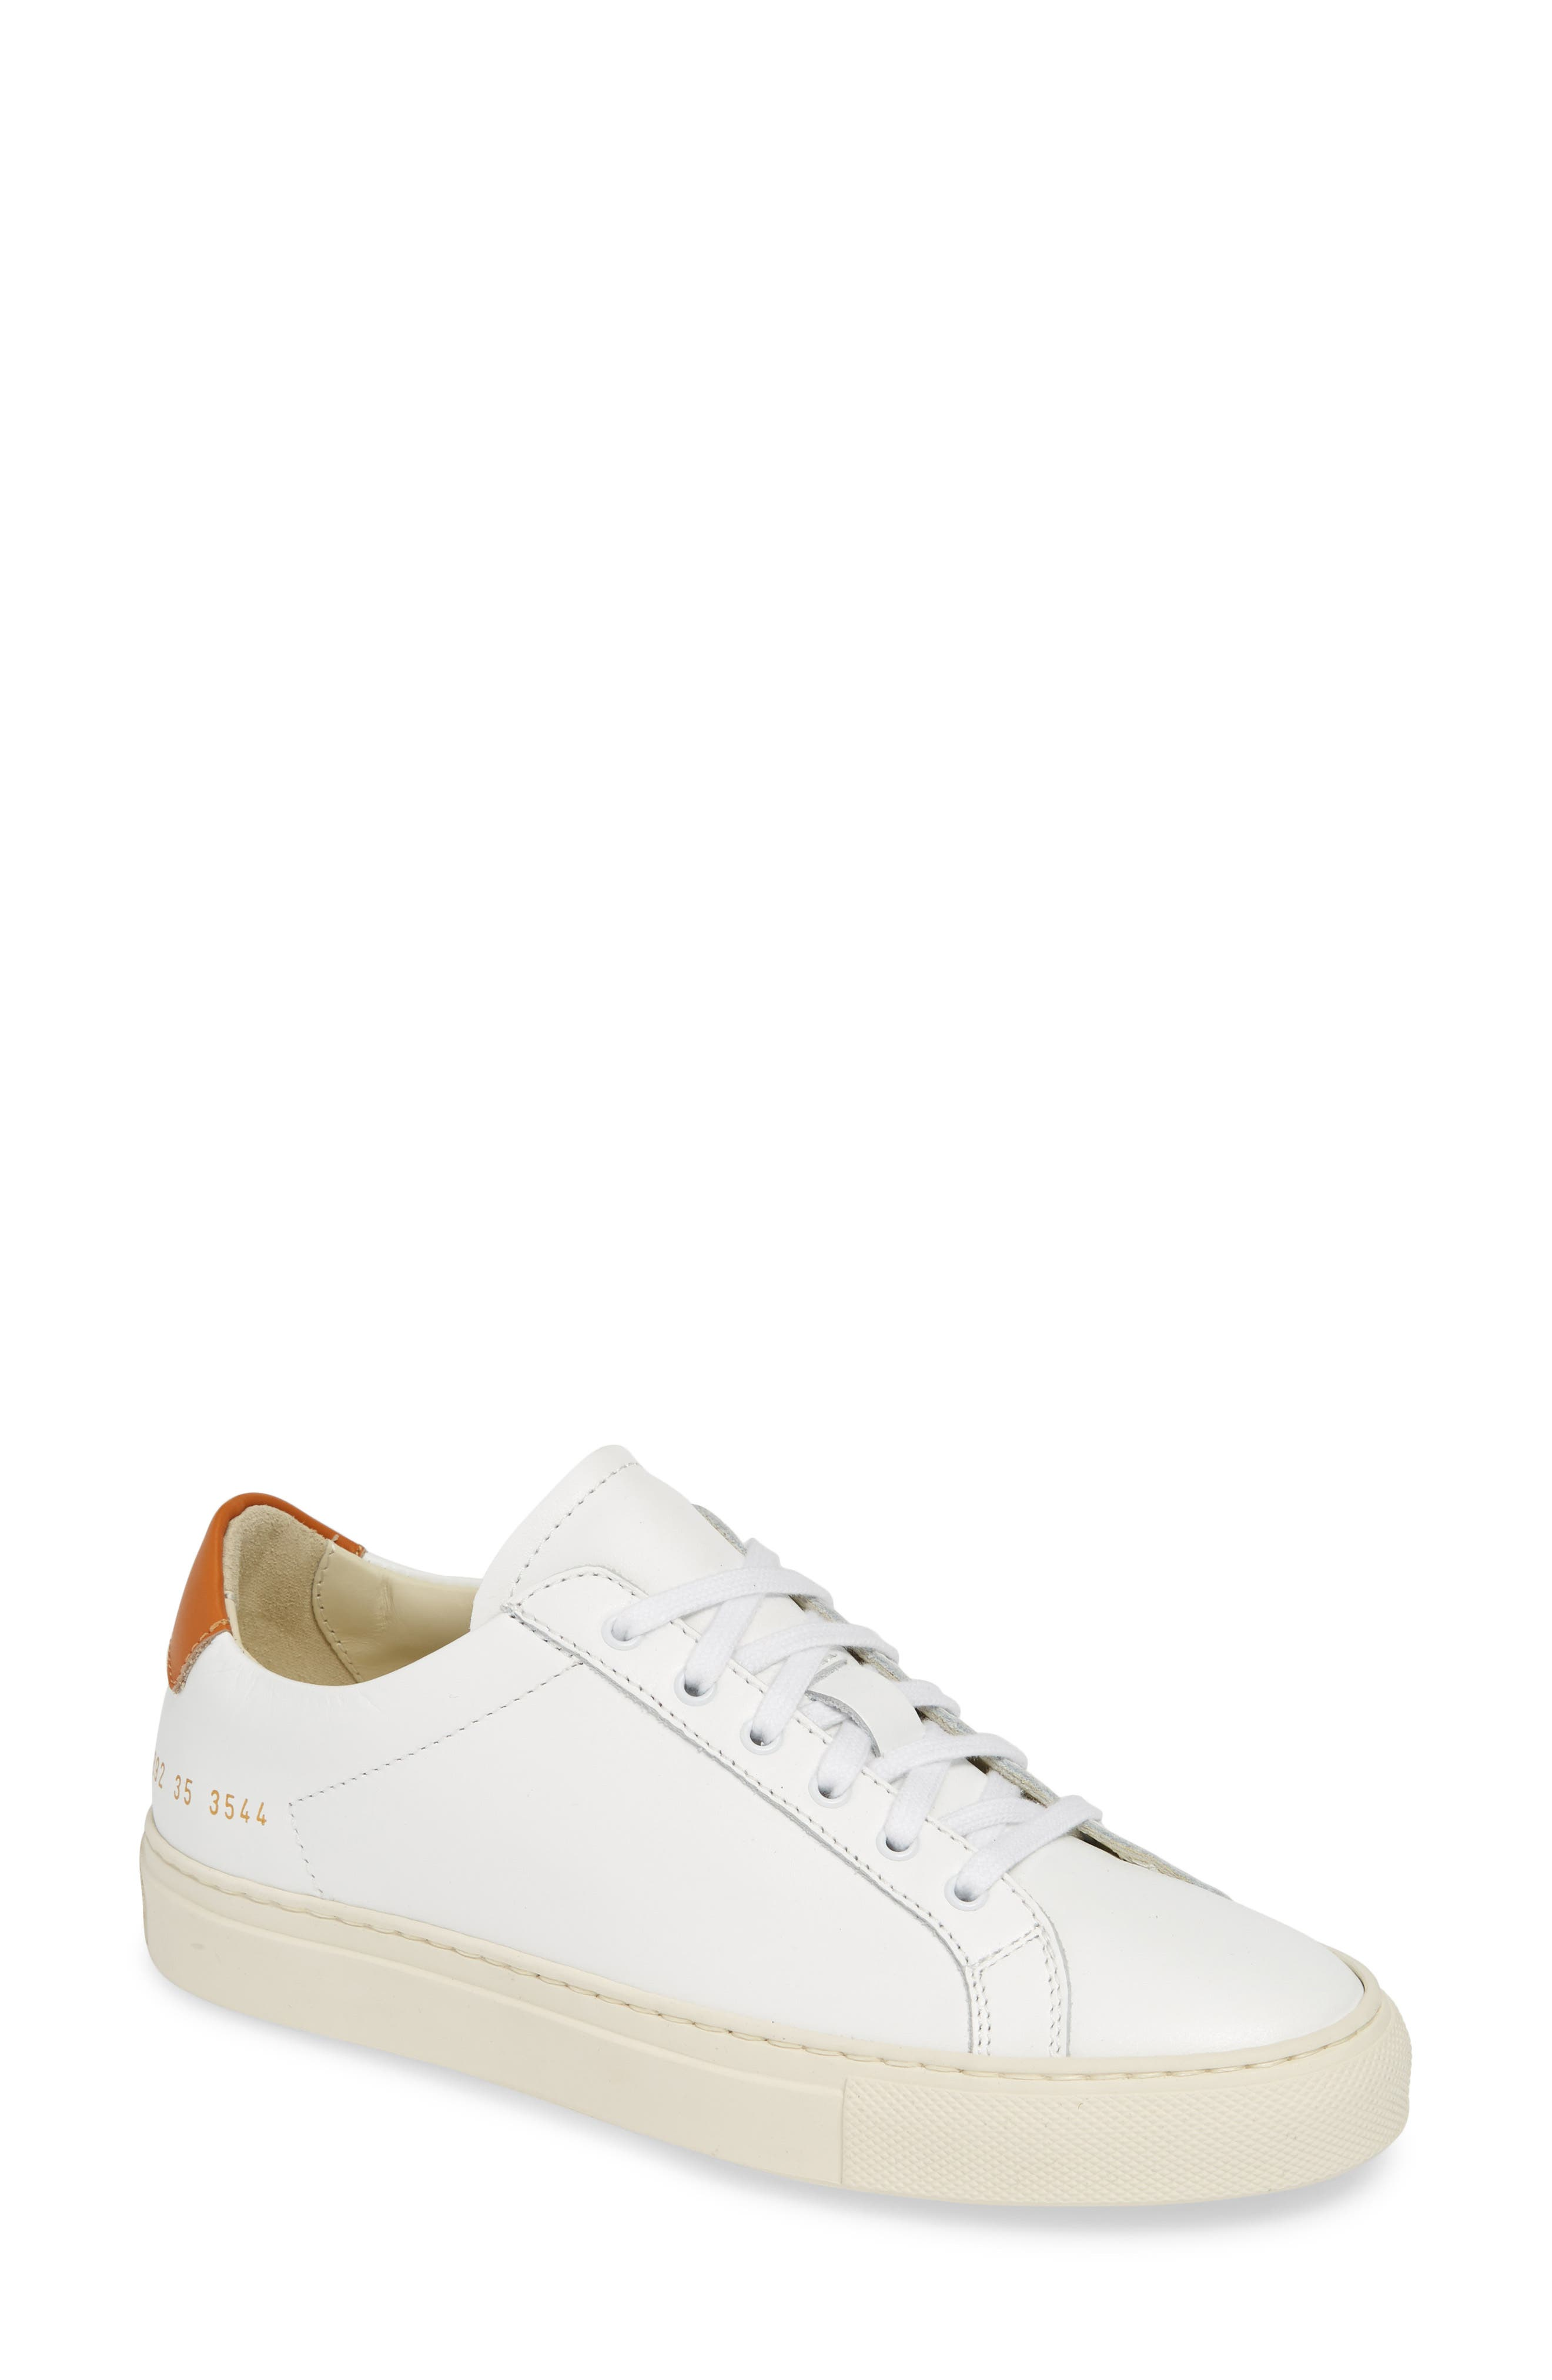 COMMON PROJECTS, Retro Low Top Sneaker, Main thumbnail 1, color, WHITE/ BROWN